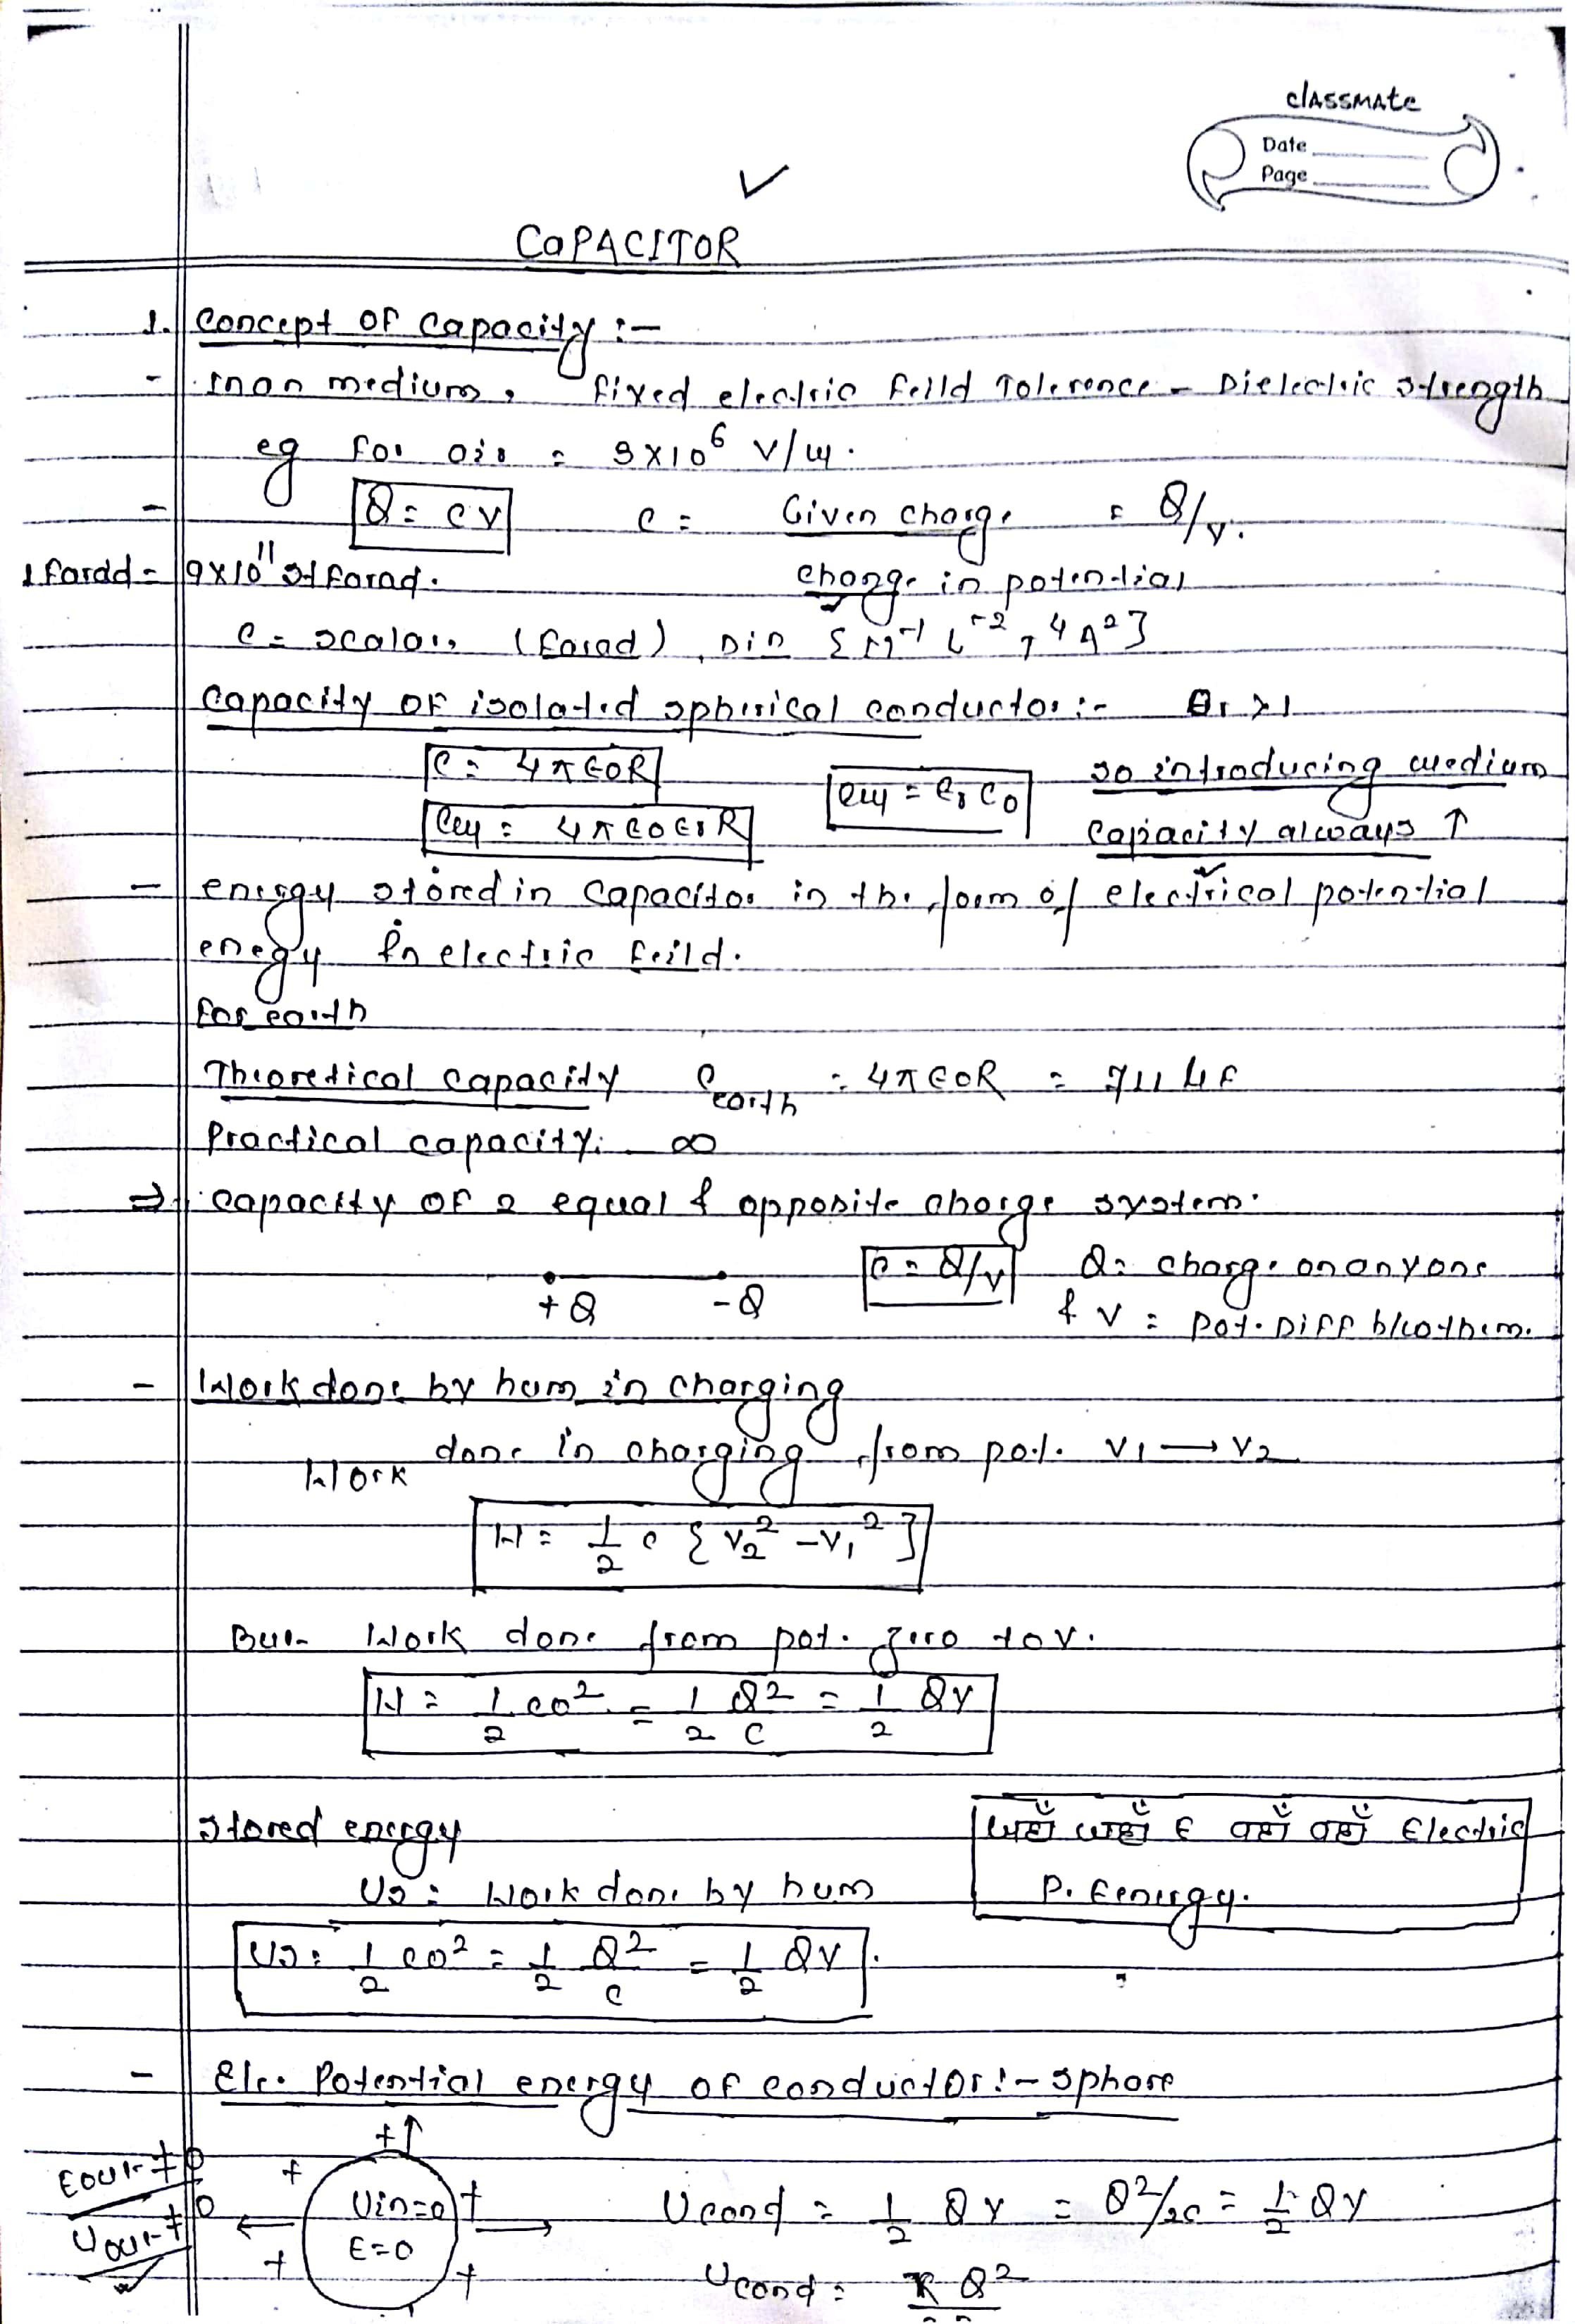 CAPACITOR HANDWRITTEN NOTES FOR NEET, AIIMS AND IIT-JEE